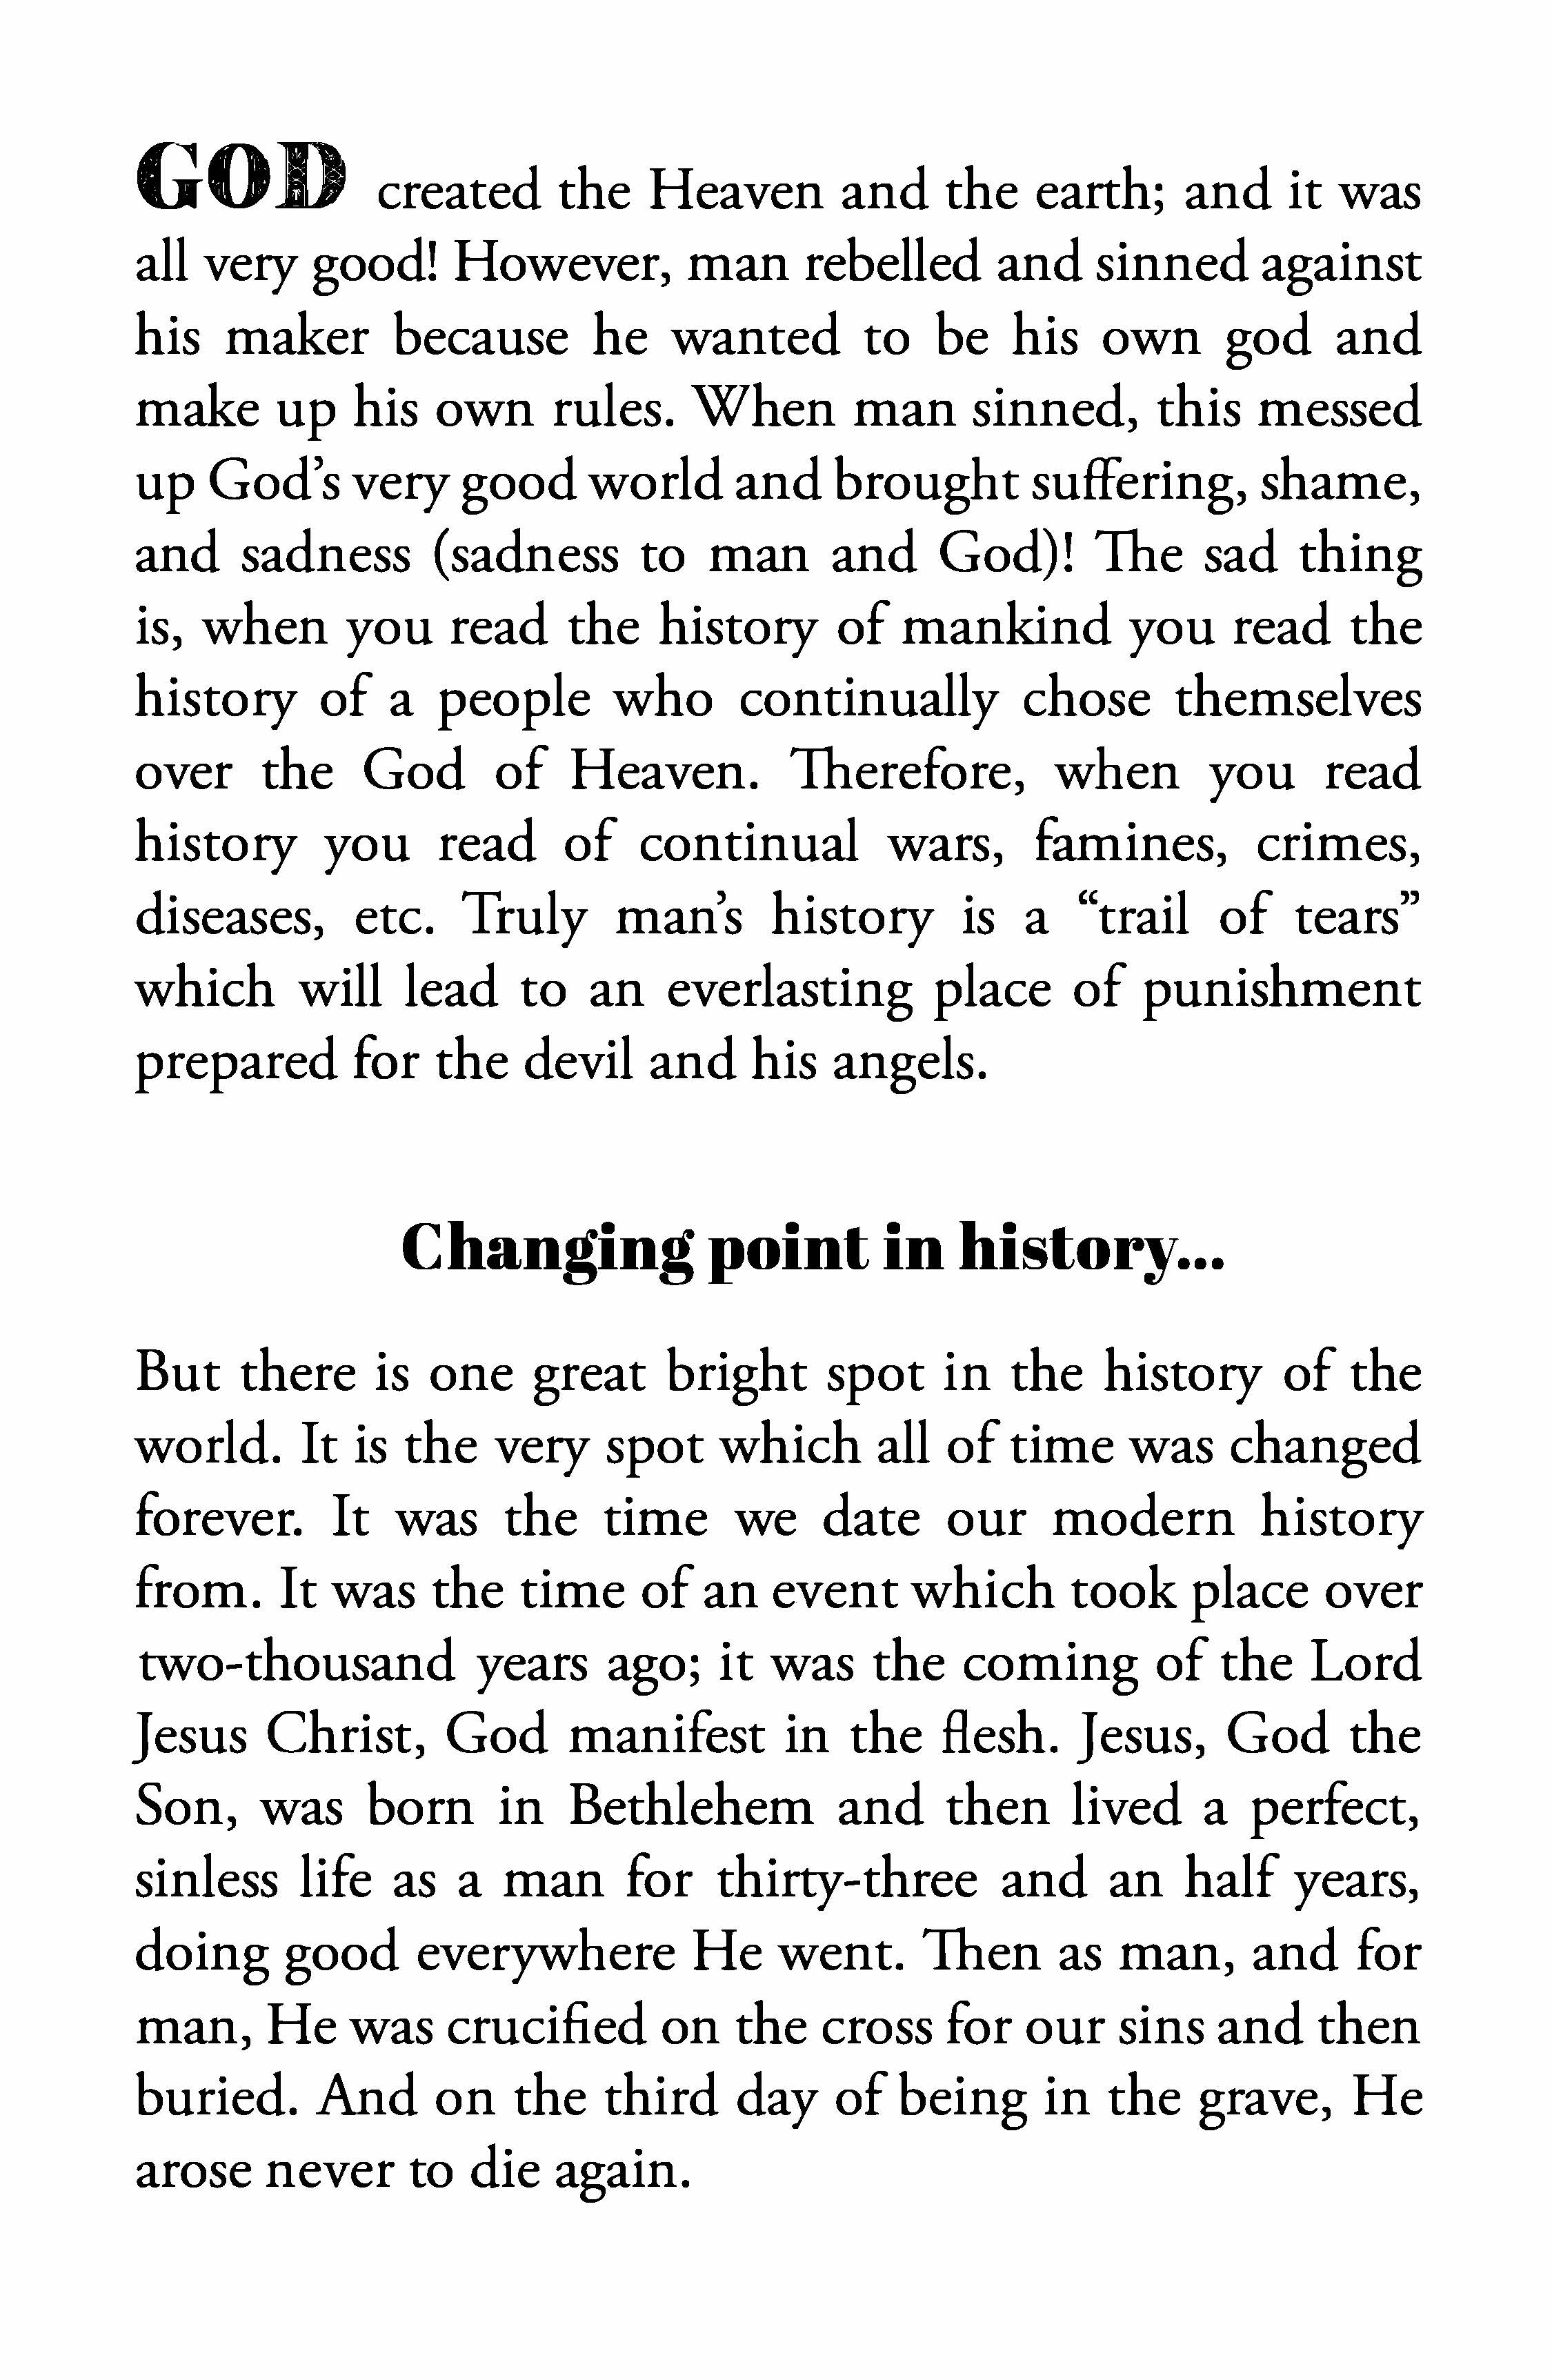 An Important History Lesson 060919 page 2